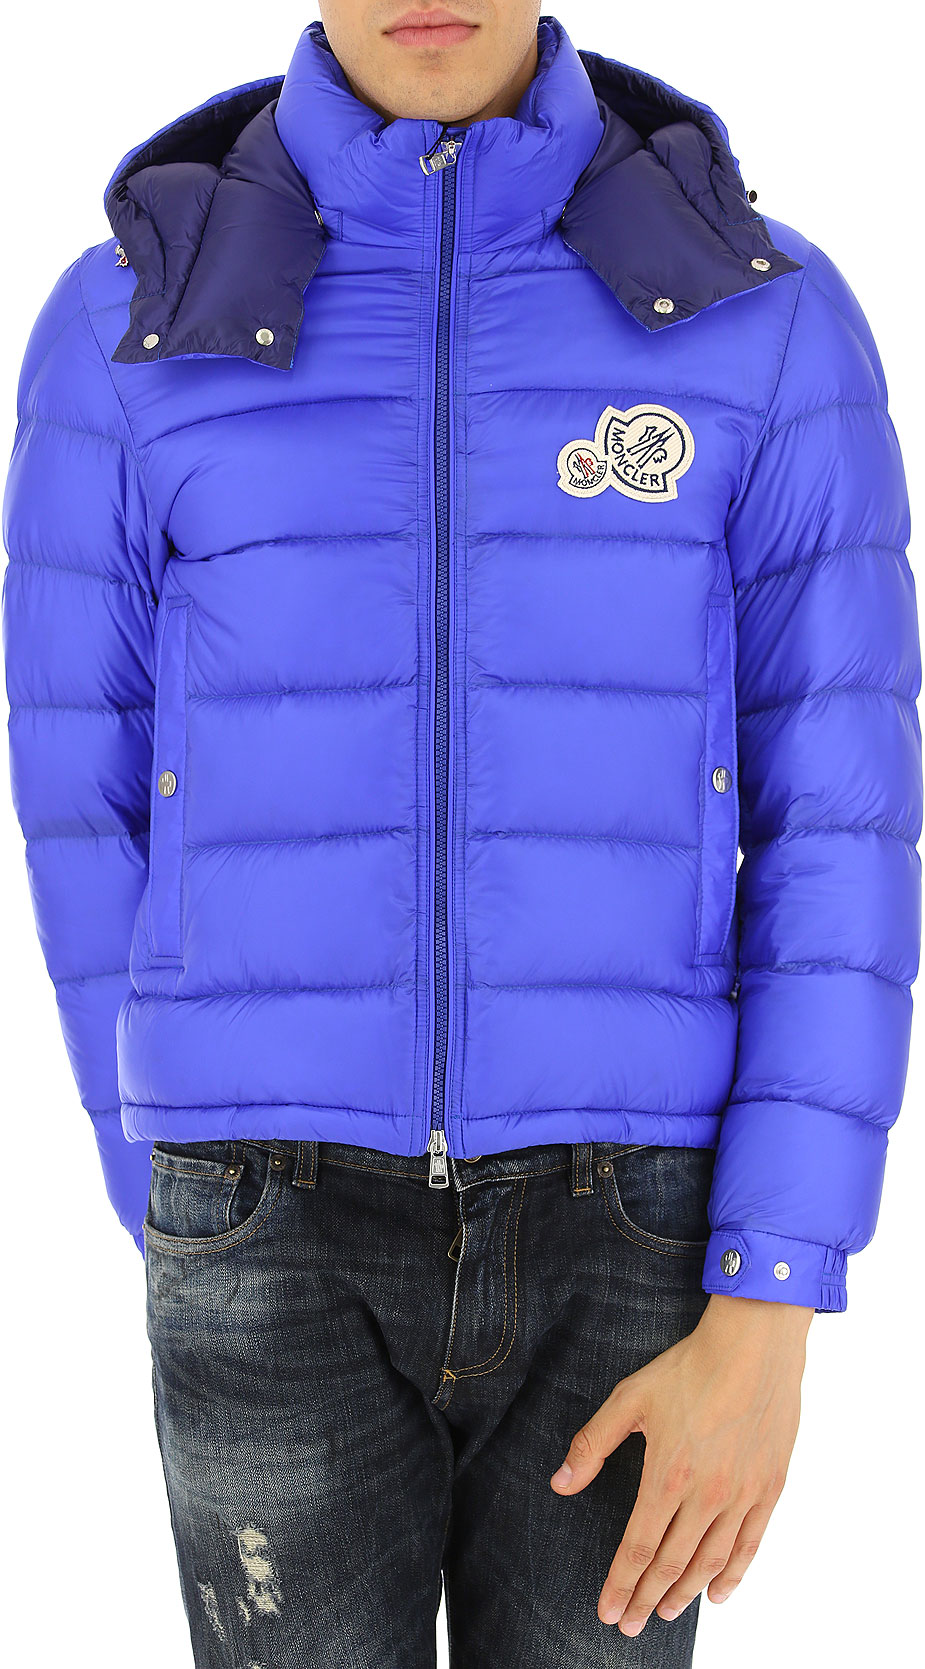 Mens Clothing Moncler, Style code: 4181153334-bramant-